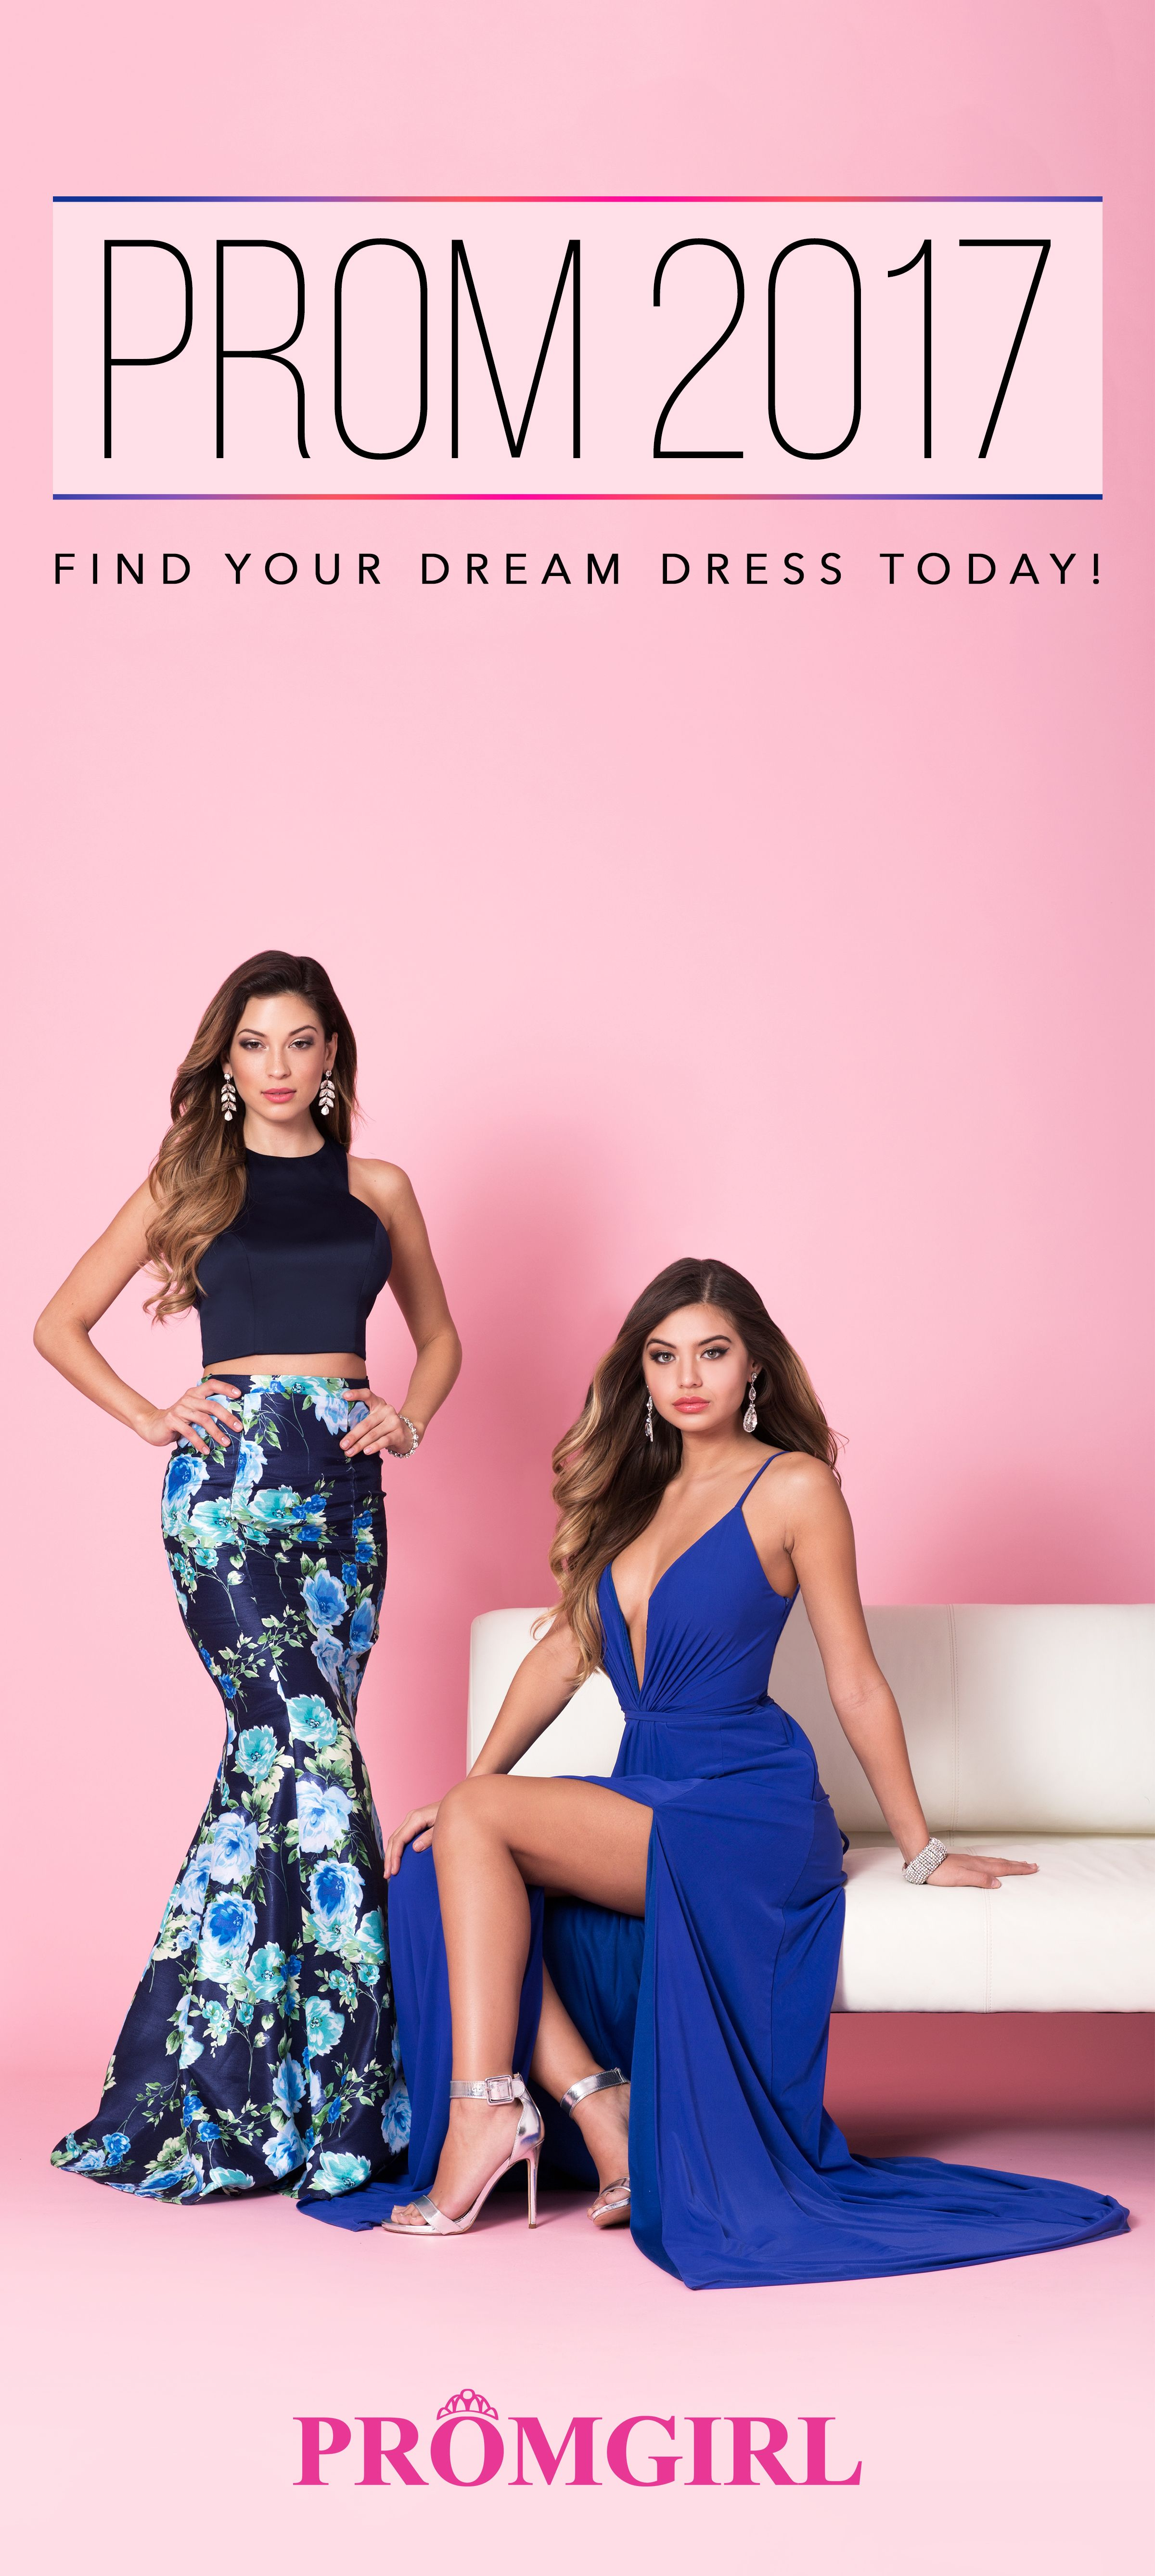 PromGirl carries a large selection of prom dresses that are shown in ...